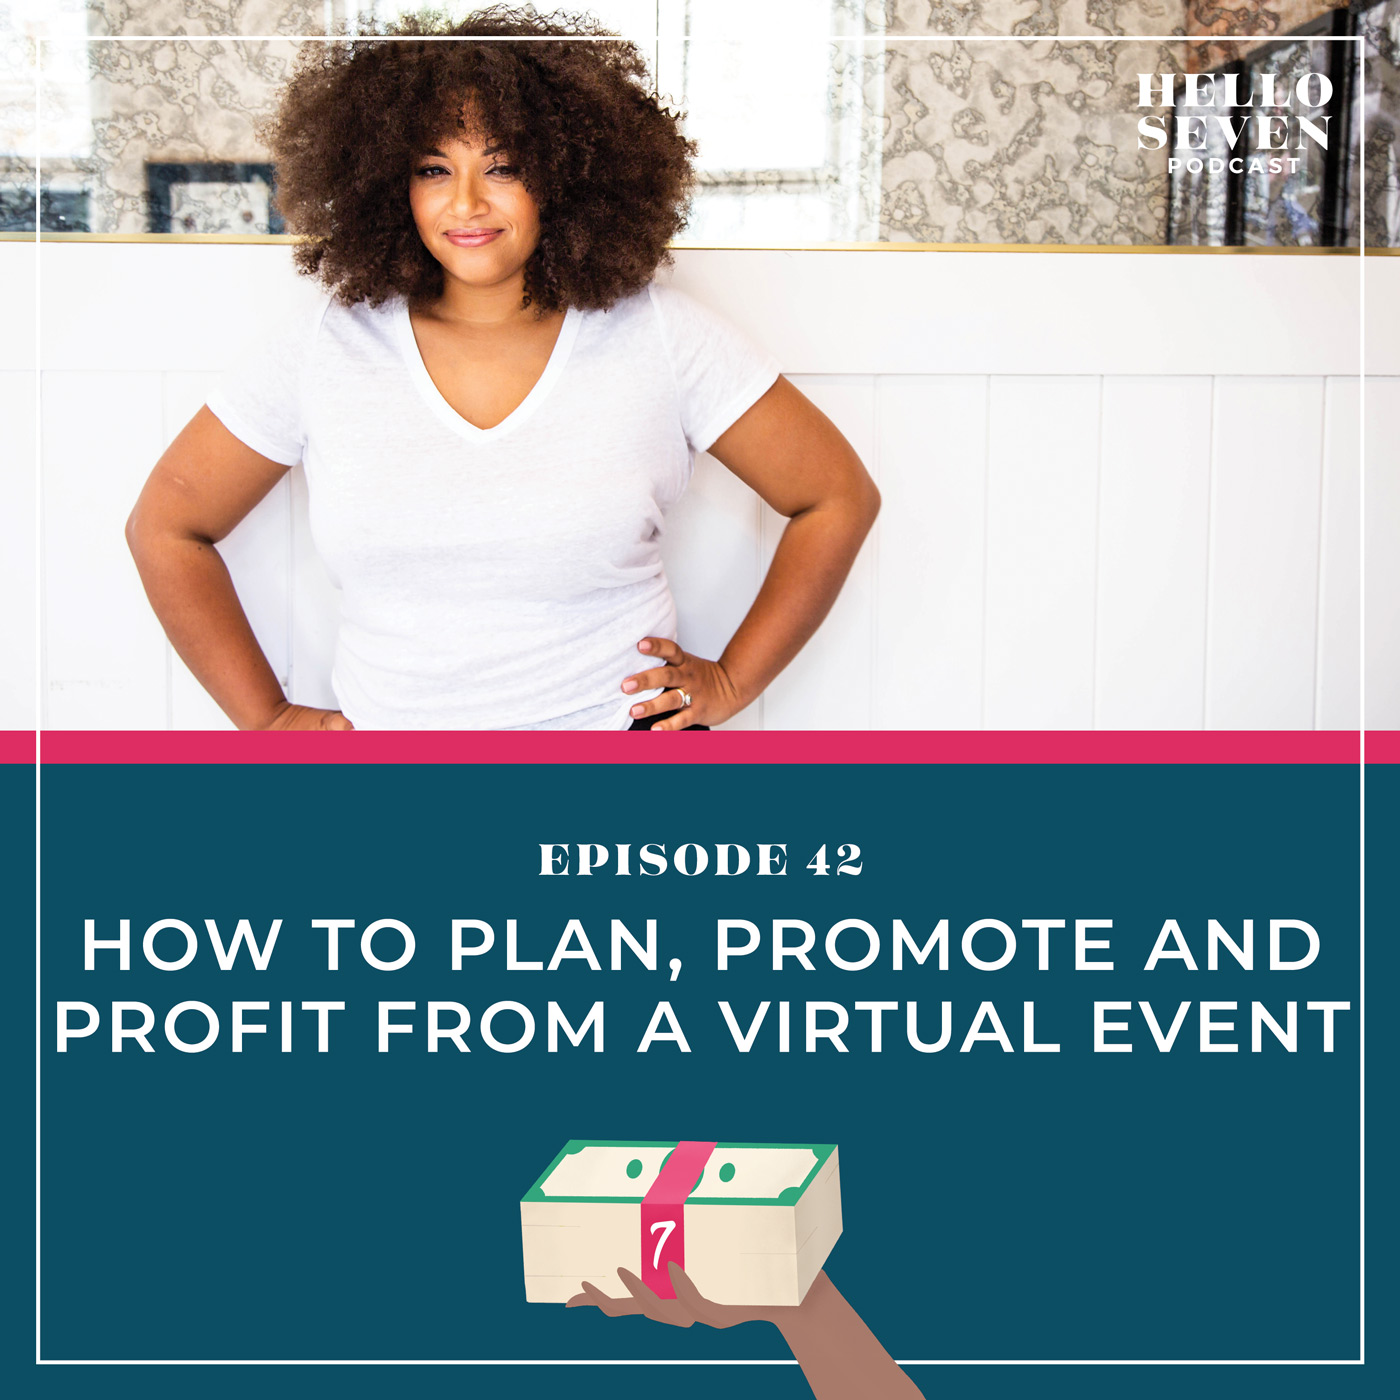 How to Plan, Promote and Profit from a Virtual Event